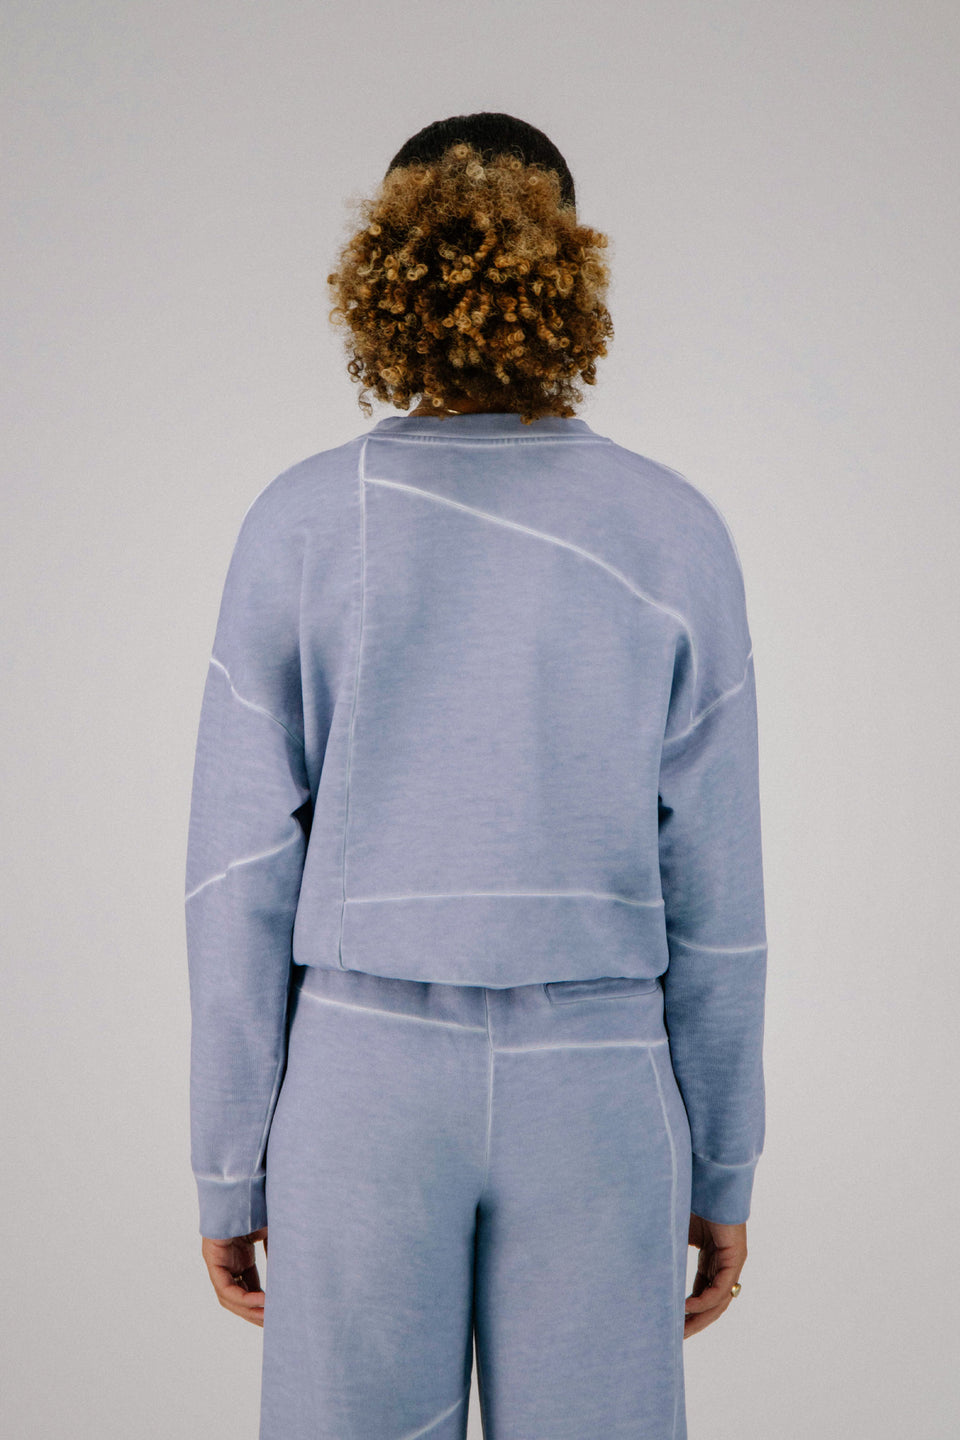 Deconstructed Crewneck Cool Blue